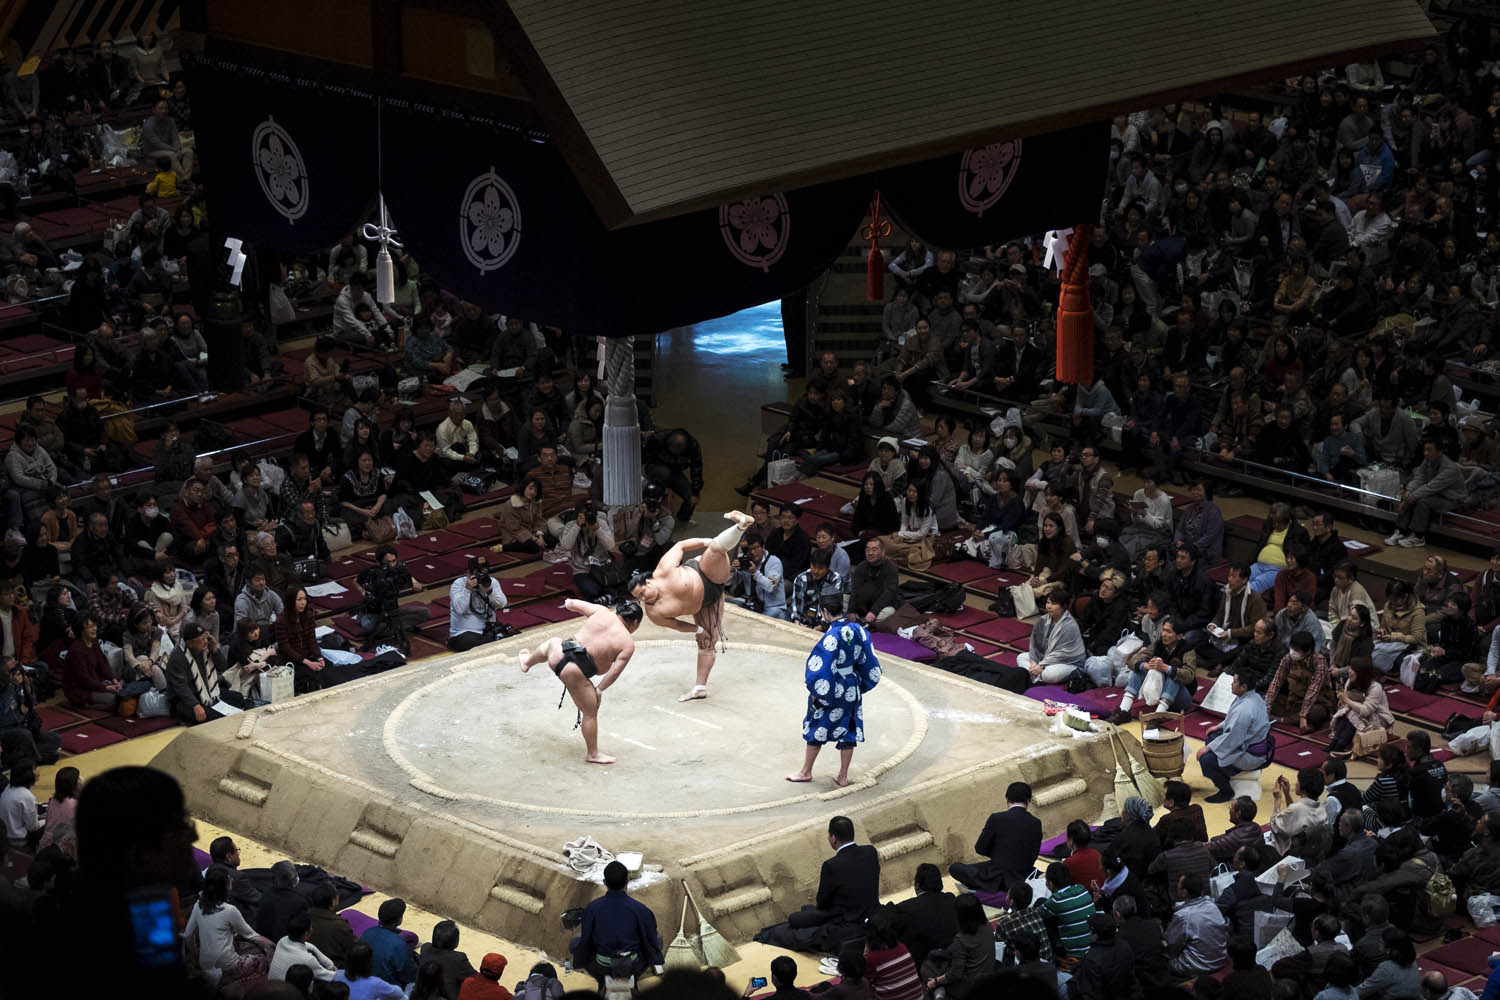 Beloved World Cities, Tokyo, Japan, Ryogoku Kokugikan Stadium, Grand tournament moment